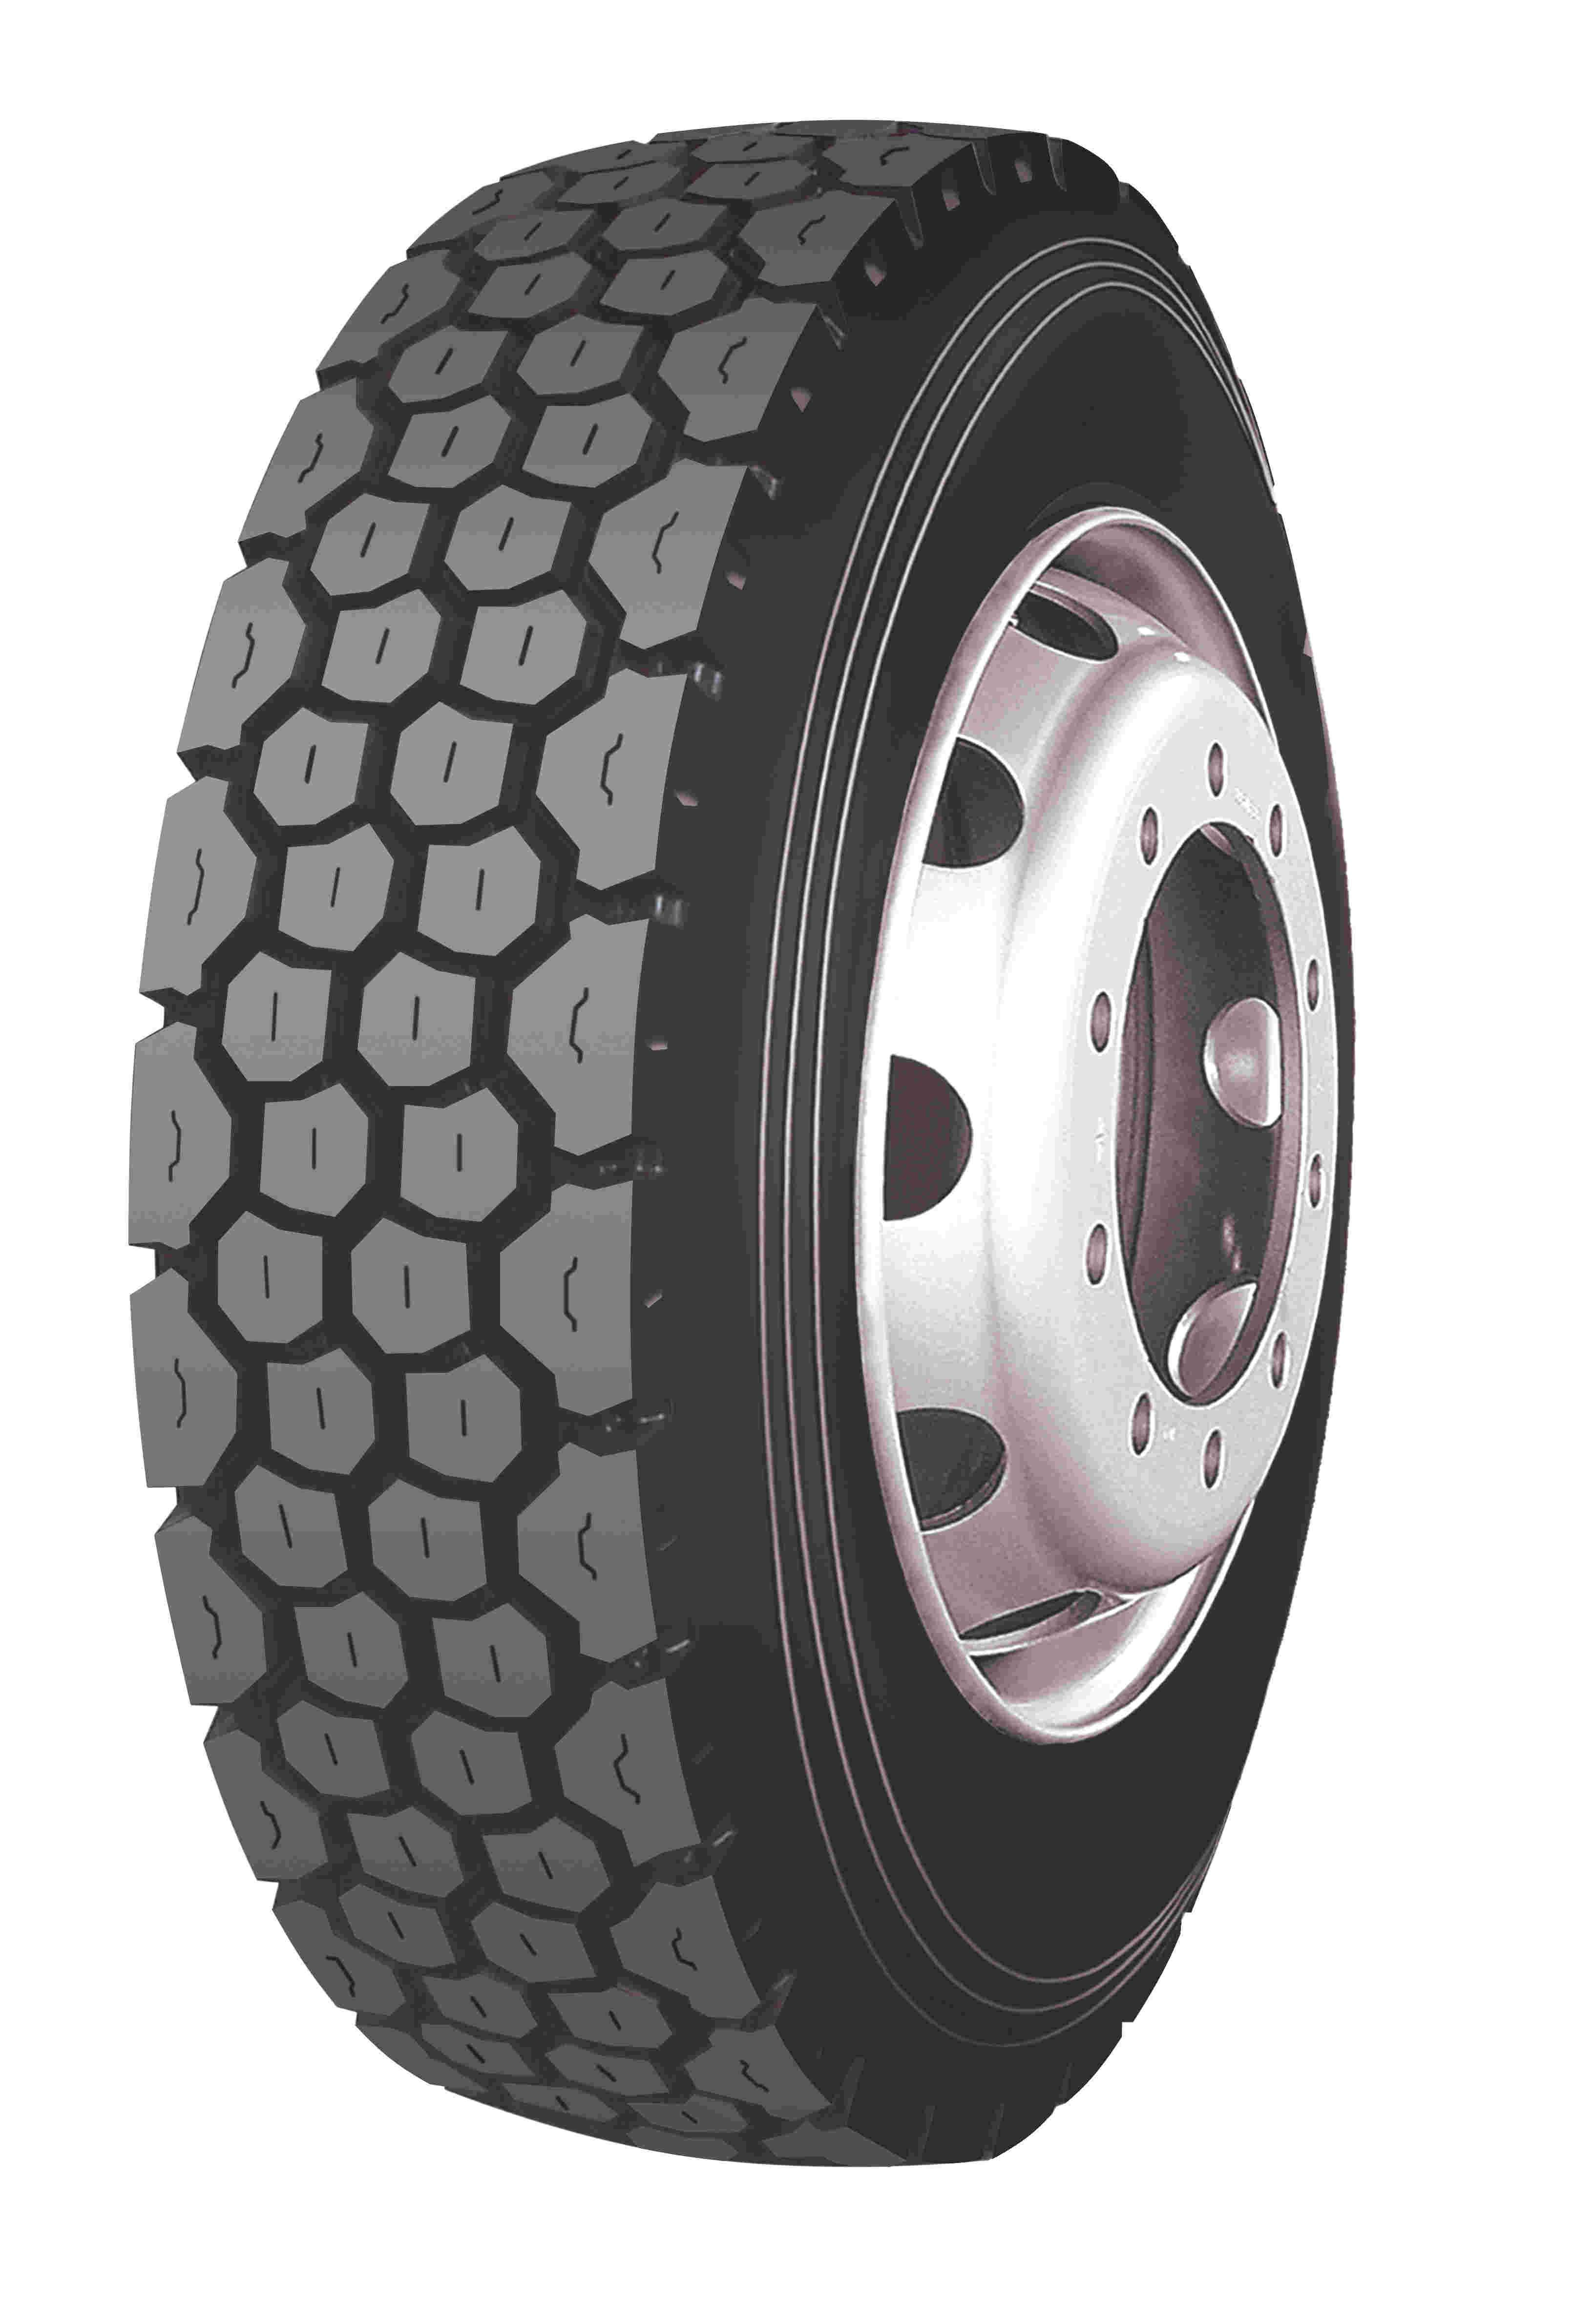 All Steel Heavy Duty New Radial TBR truck tire 11R22.5, 295/75R22.5, 295/80R22.5,